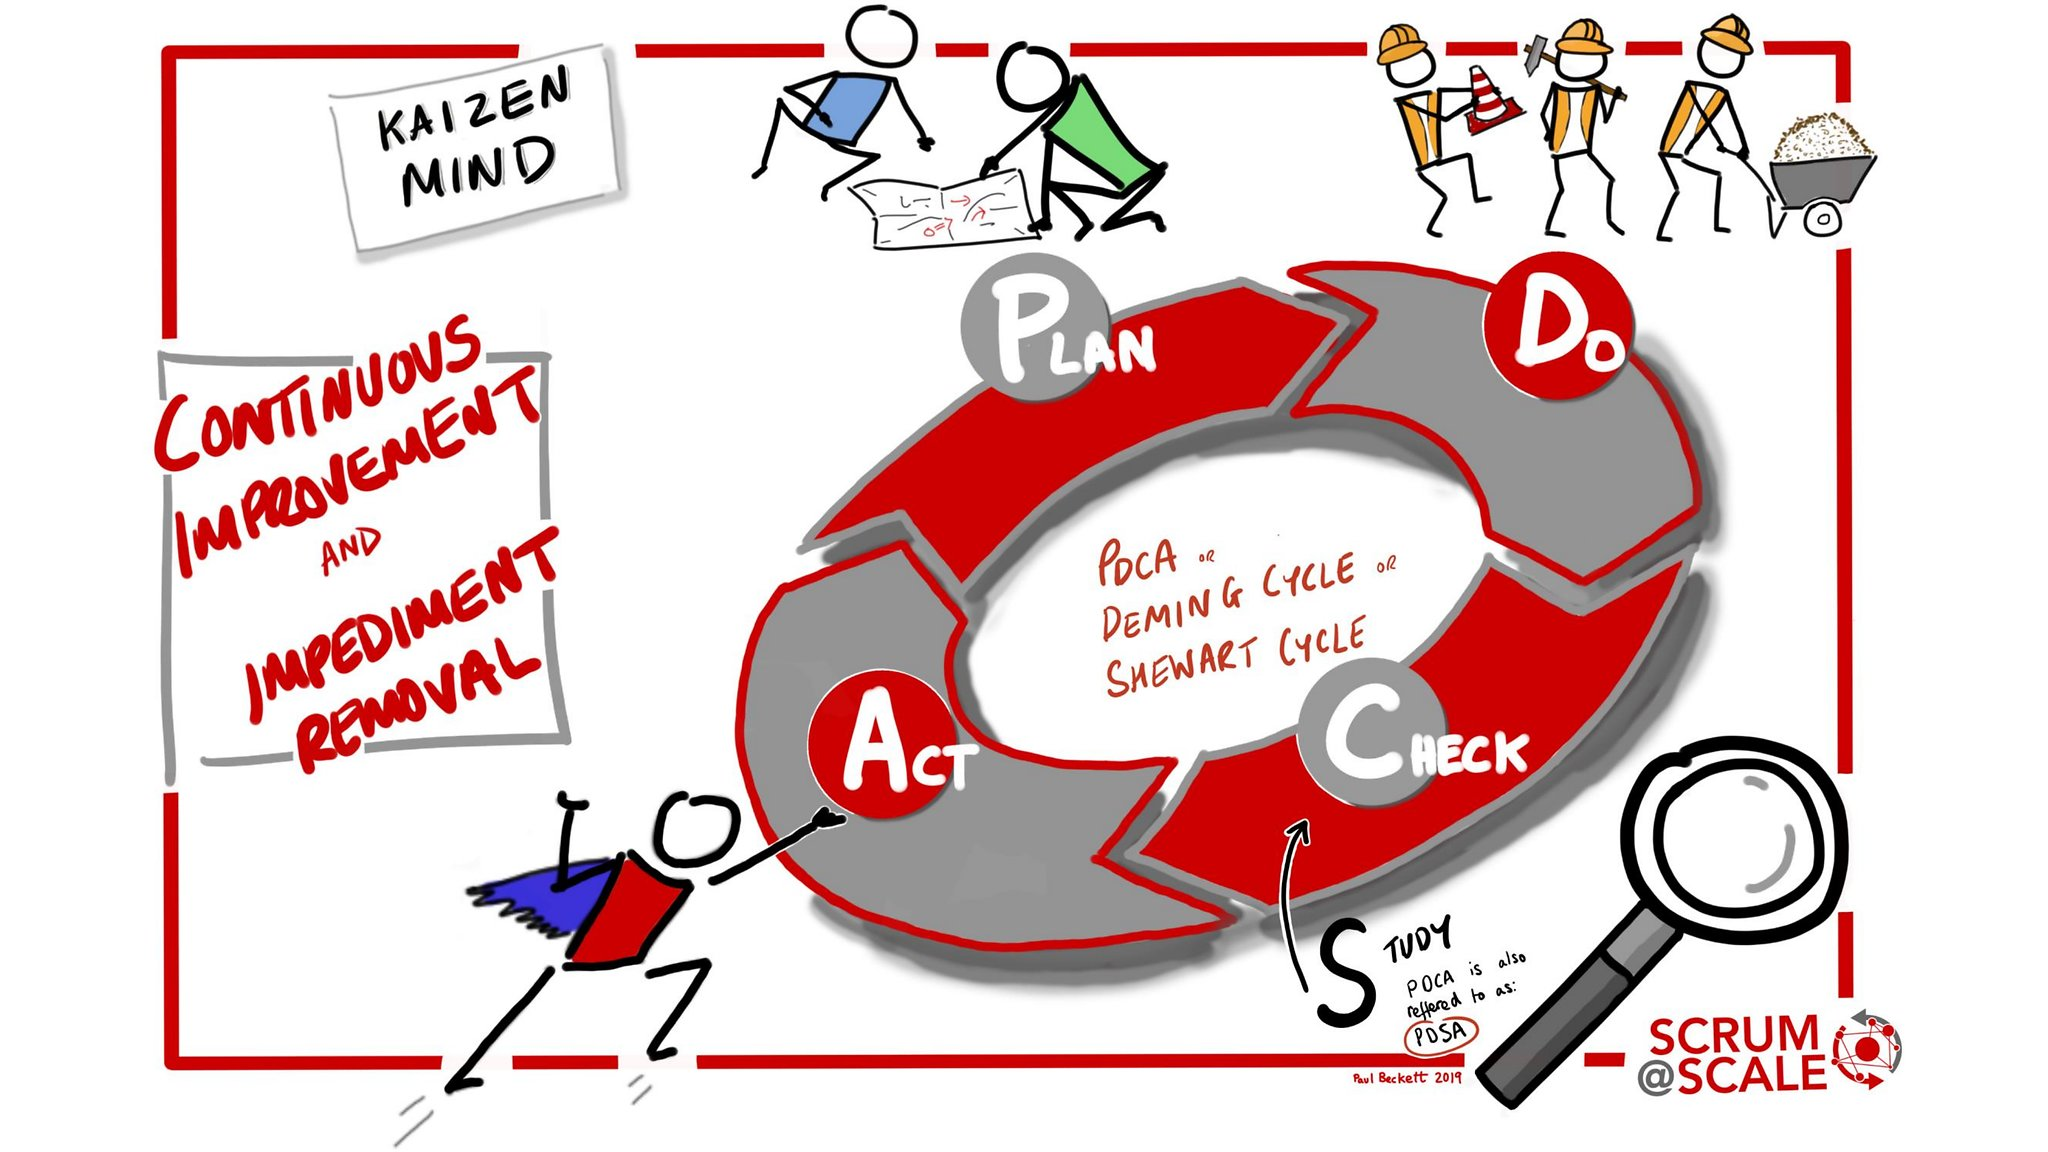 PDCA Cycle / PDSA Cycle - Continuous Improvement & Impediment Removal - Scrum@Scale Component